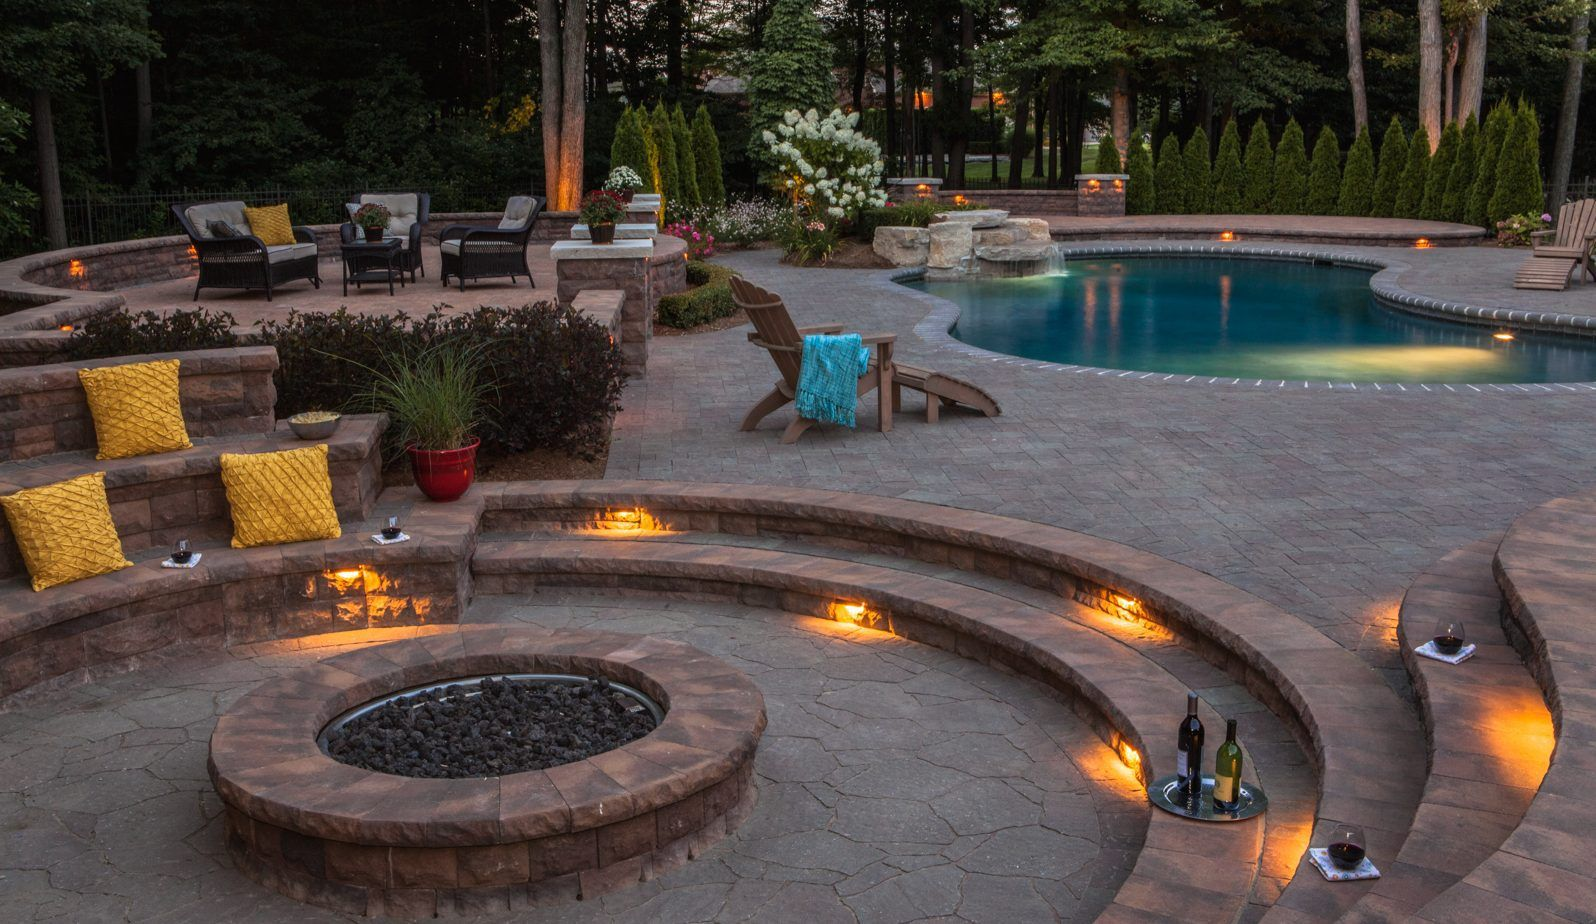 10 Dimensional Fire Pit Patio Ideas That Add Flare To Outdoor Living Design Fire Pit Patio Fire Pit Backyard Outdoor Fire